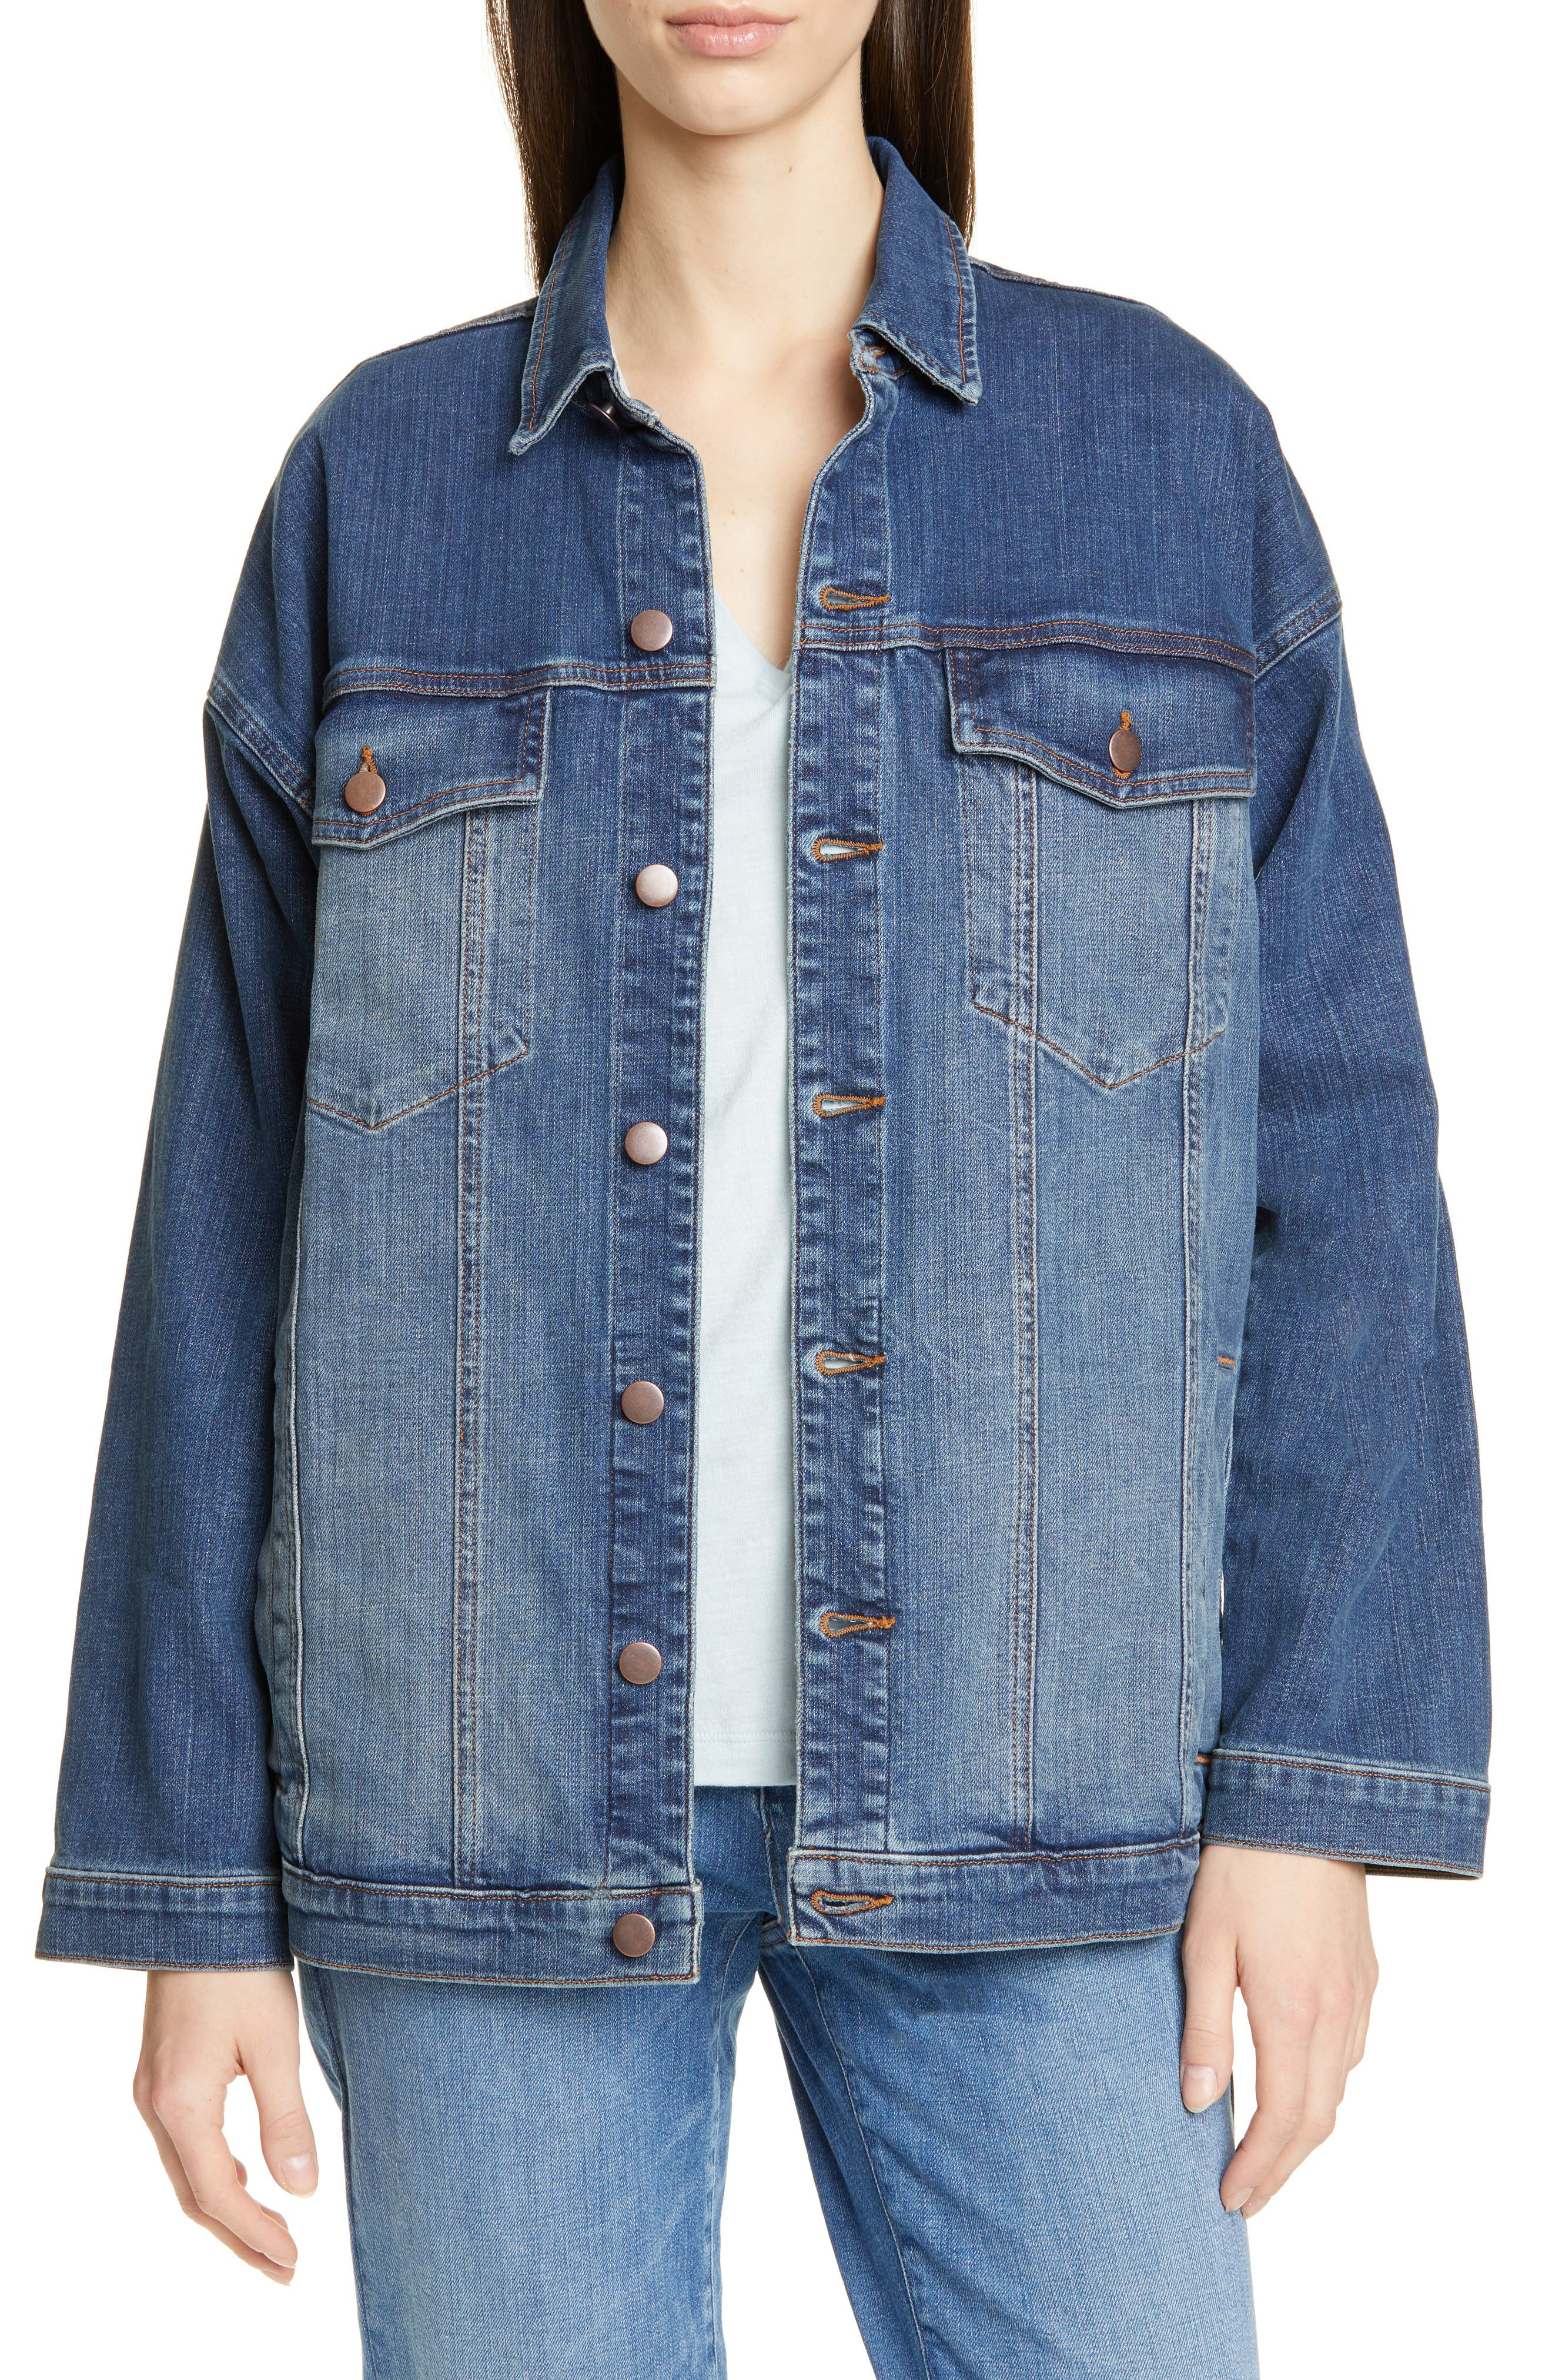 EILEEN FISHER, Oversize Stretch Organic Cotton Denim Jacket, Main thumbnail 1, color, AGED INDIGO